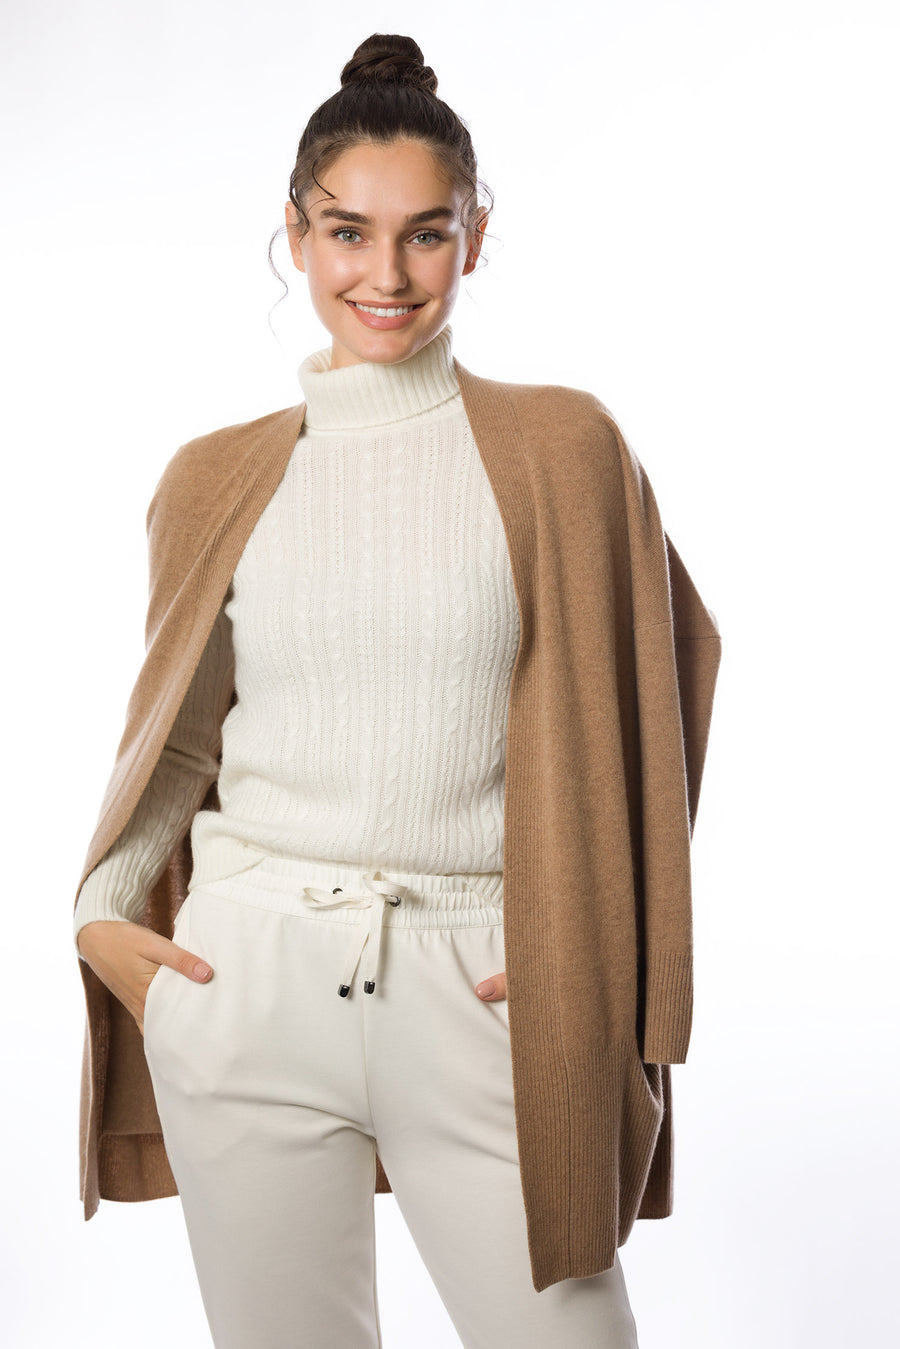 Sustainable Cashmere Cable Knit Sweater - White - Dongli Cashmere